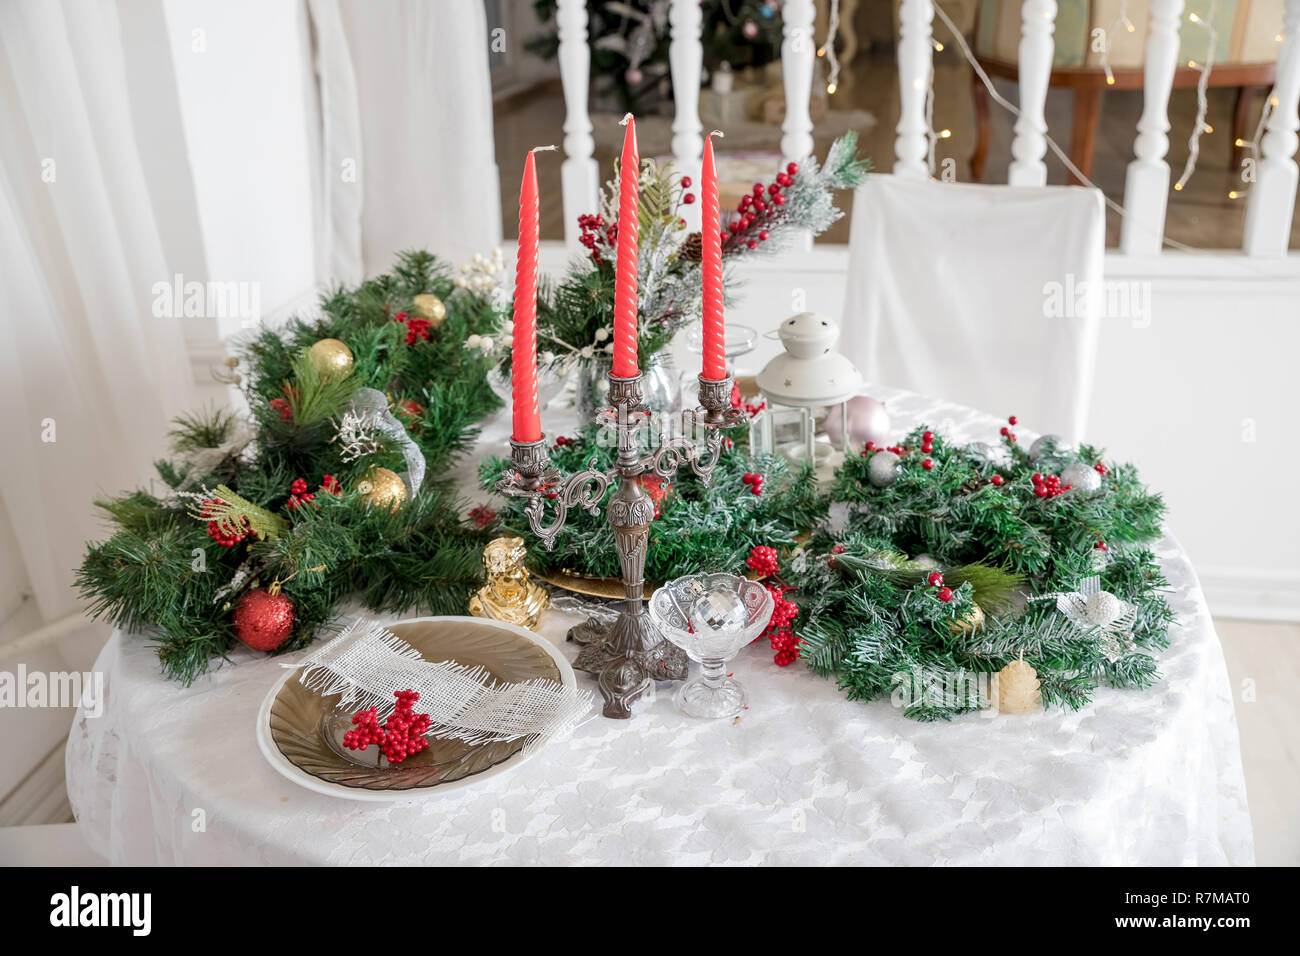 Festive Table Setting Among Winter Decorations And White